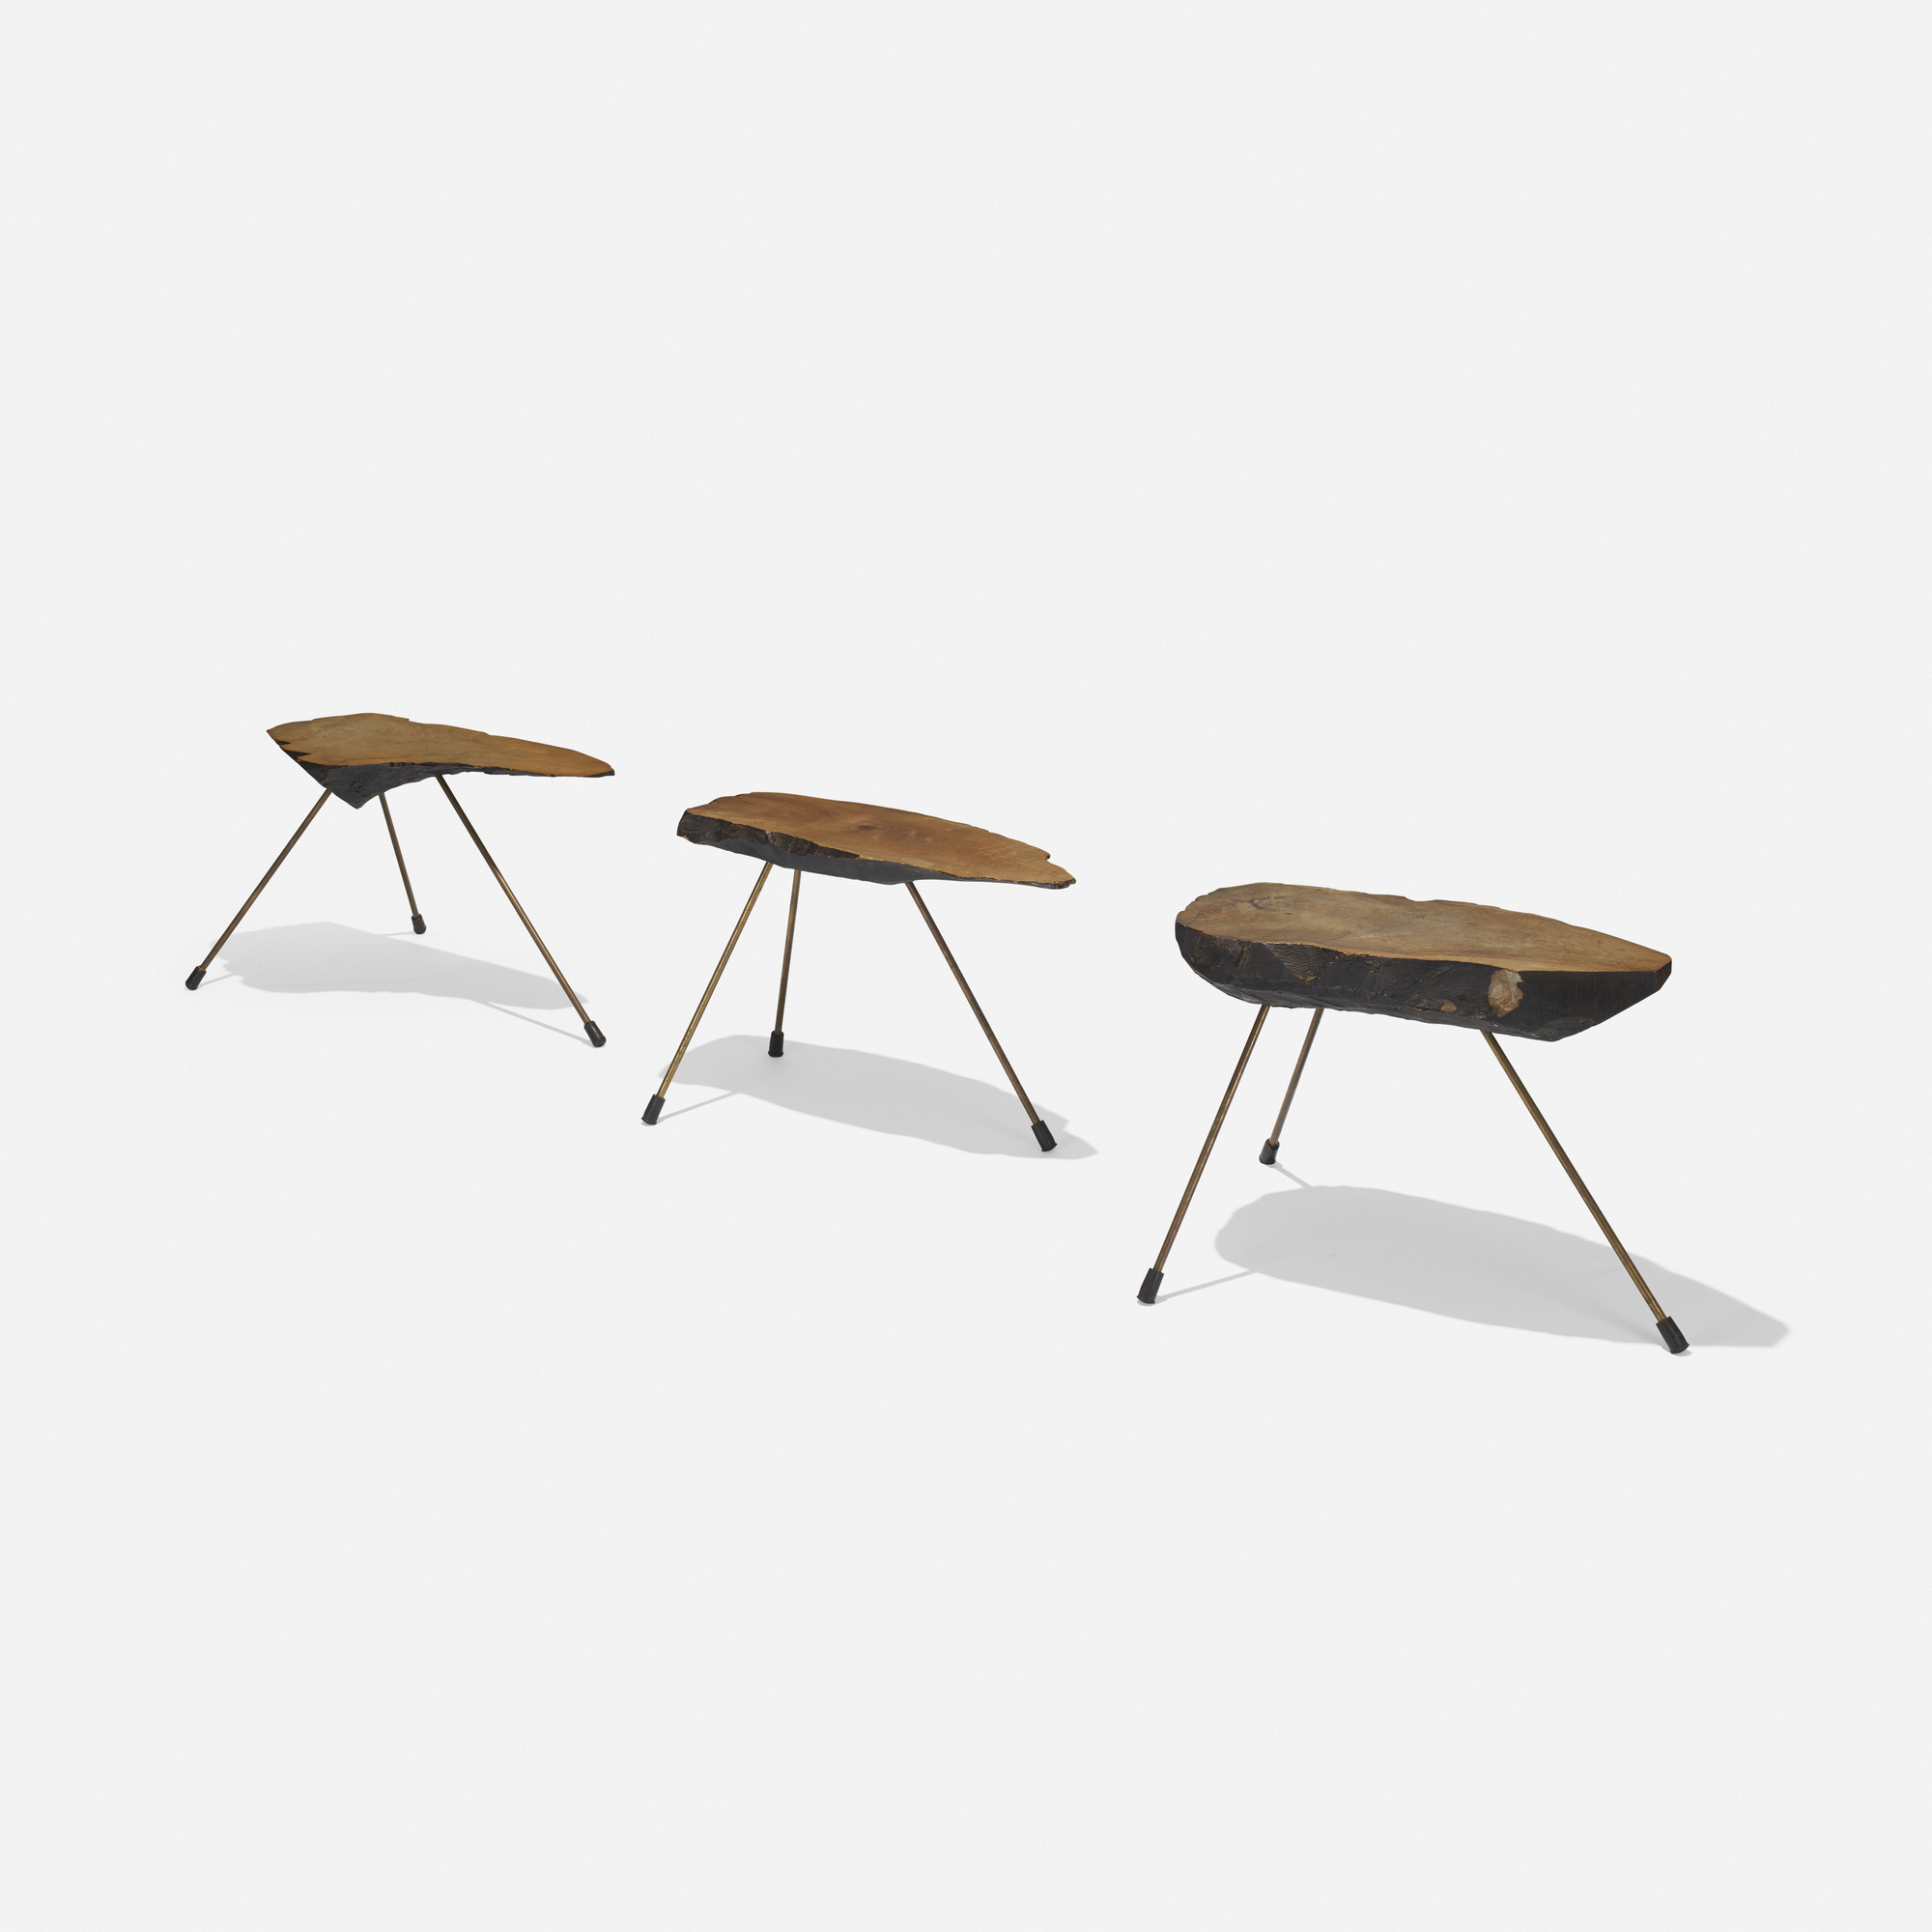 242: Carl Auböck II / occasional tables, set of three (2 of 4)